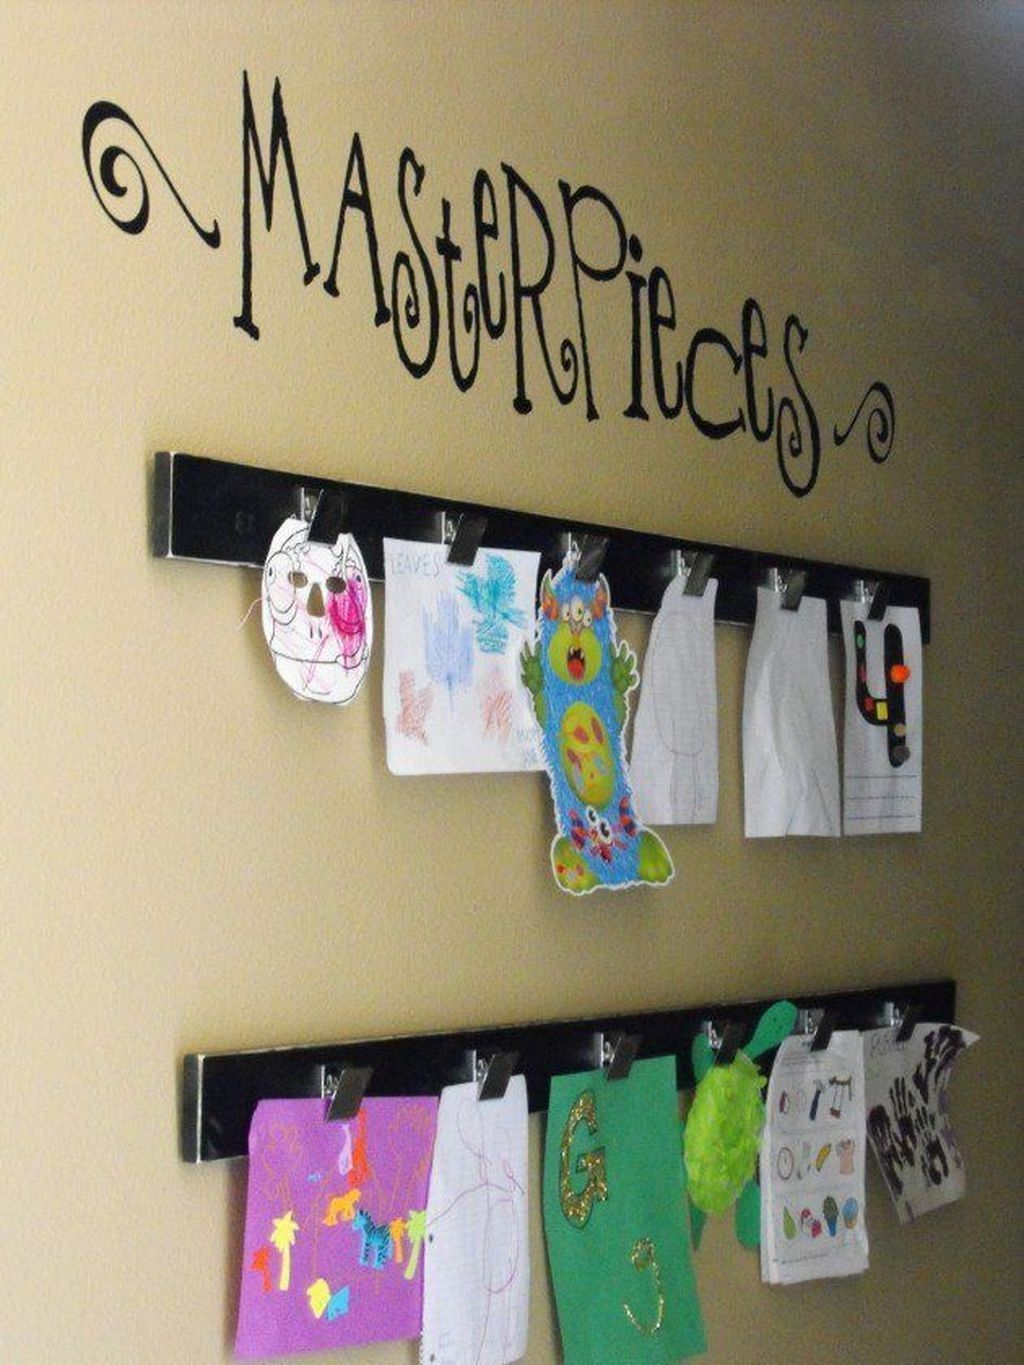 30+ Affordable Diy Wall Art Projects Ideas For Kids Room images